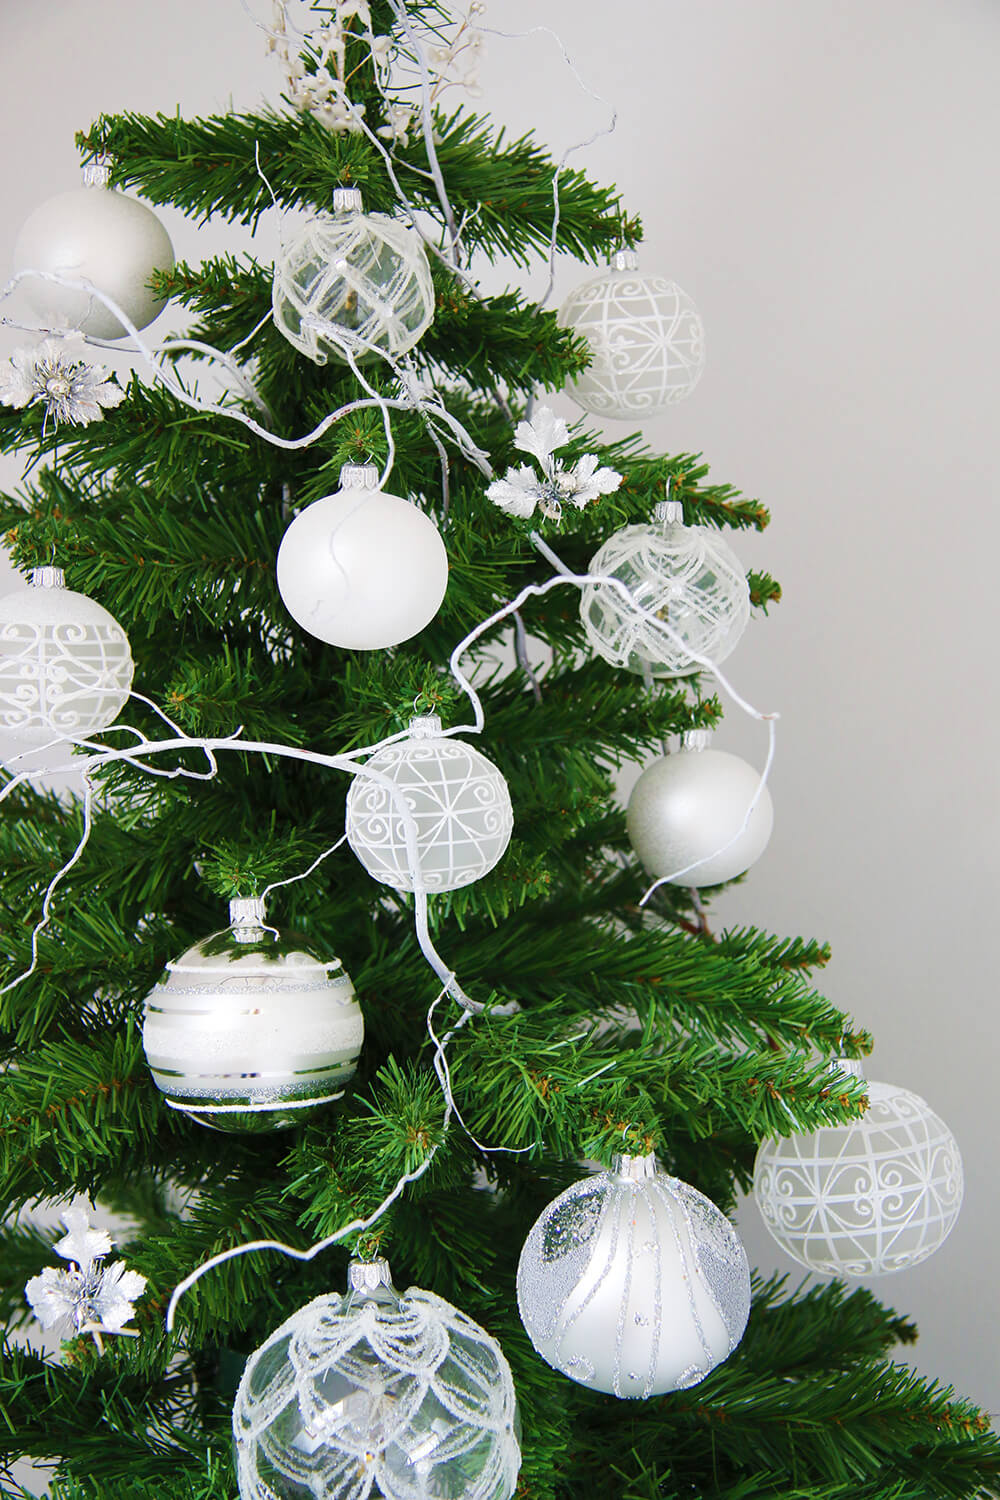 Un sapin de no l blanc et argent frenchy fancy for Deco de sapin de noel rouge et blanc